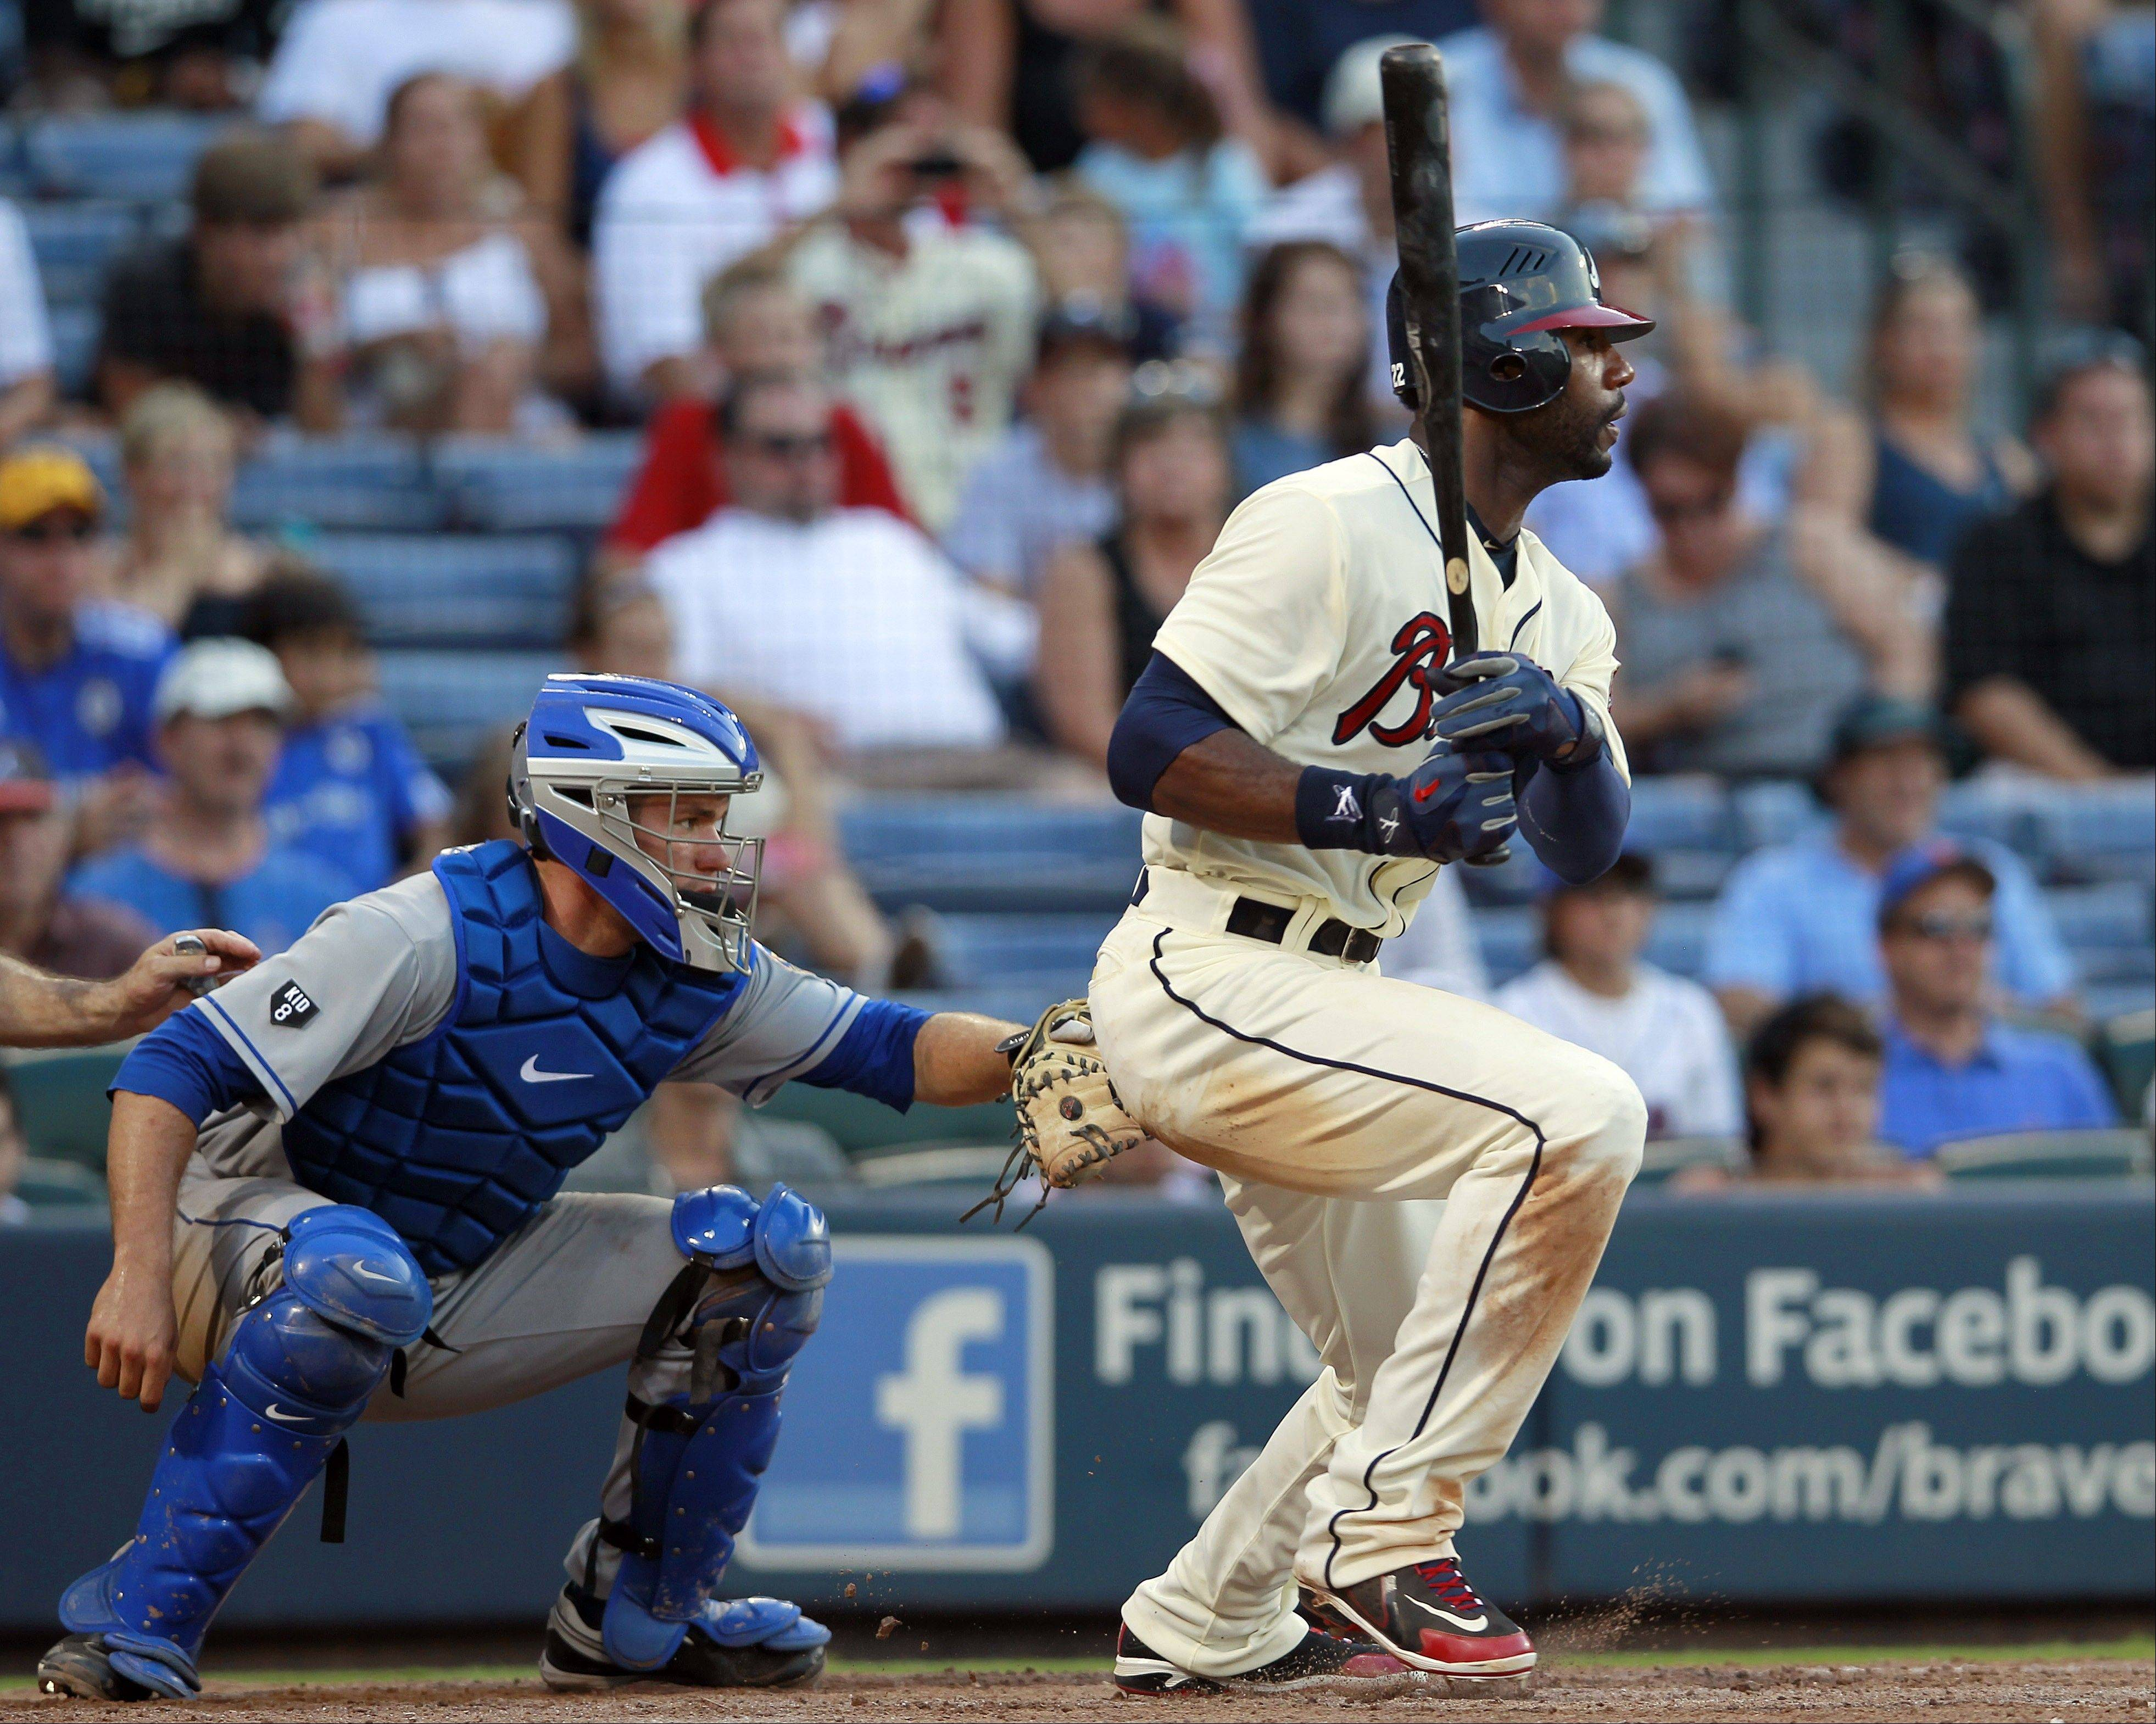 Atlanta Braves right fielder Jason Heyward follows through with an RBI single to give the Braves the lead Saturday during the eighth inning in Atlanta. New York Mets catcher Josh Thole looks on. Atlanta held on to win 8-7.